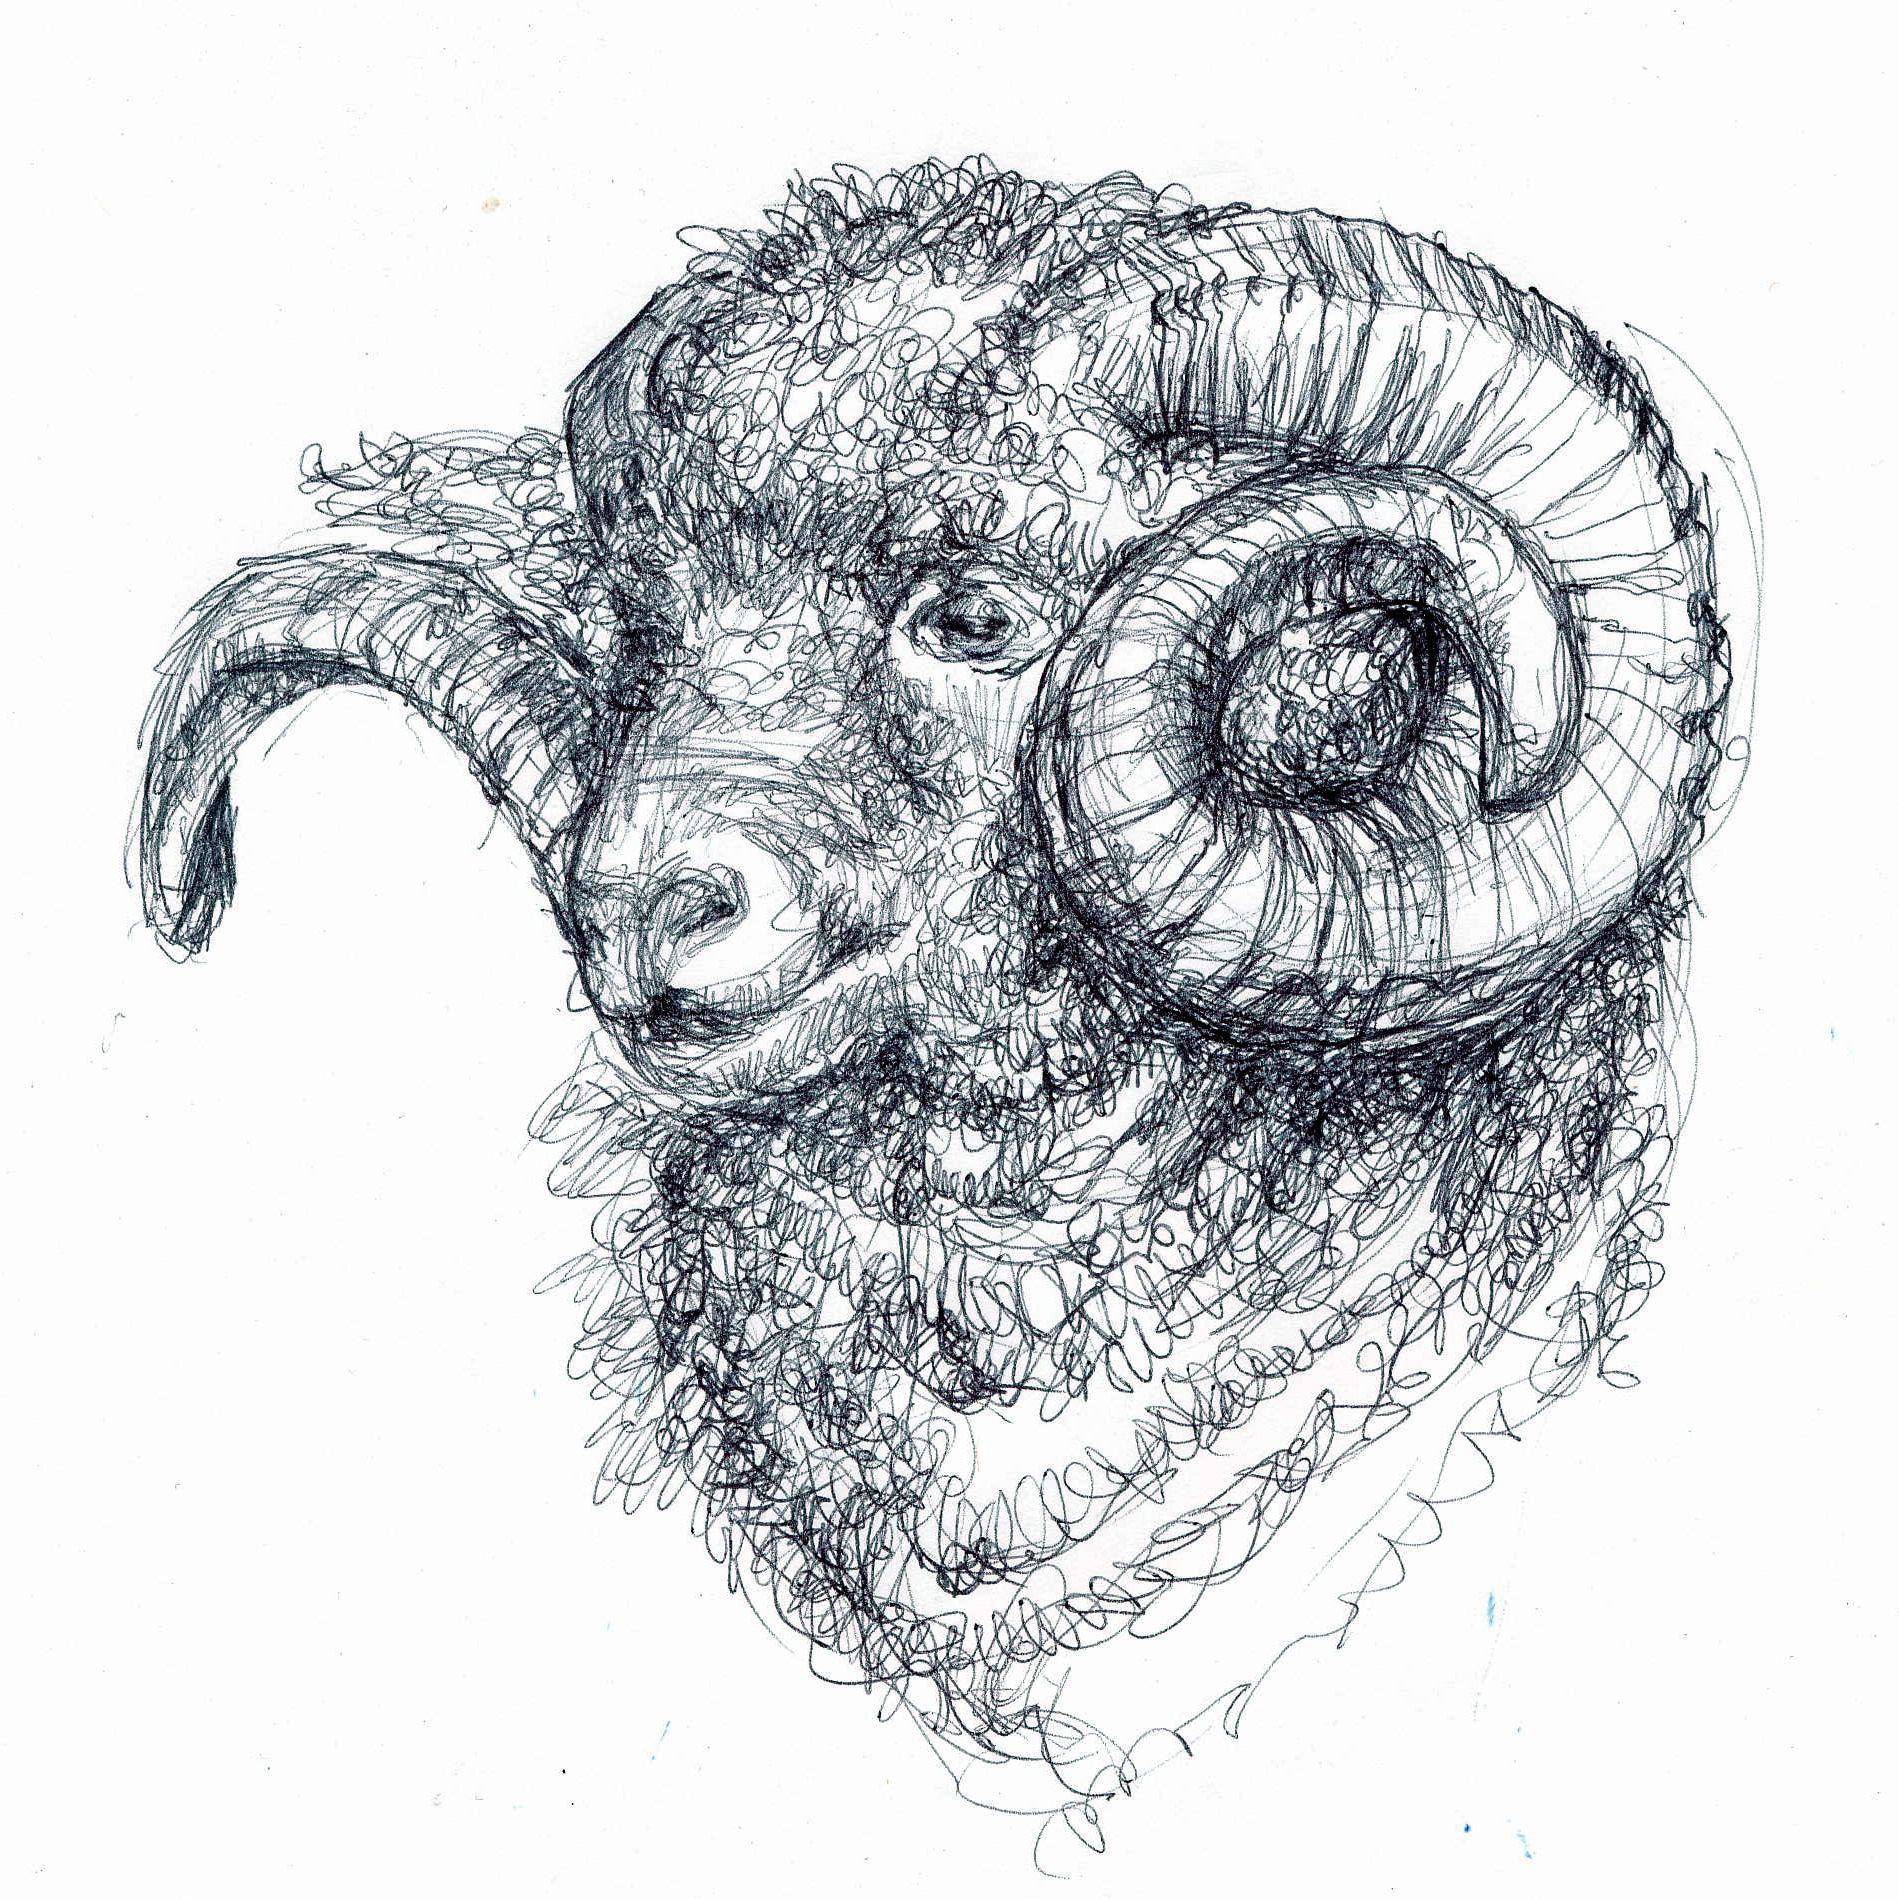 Ram drawing reference